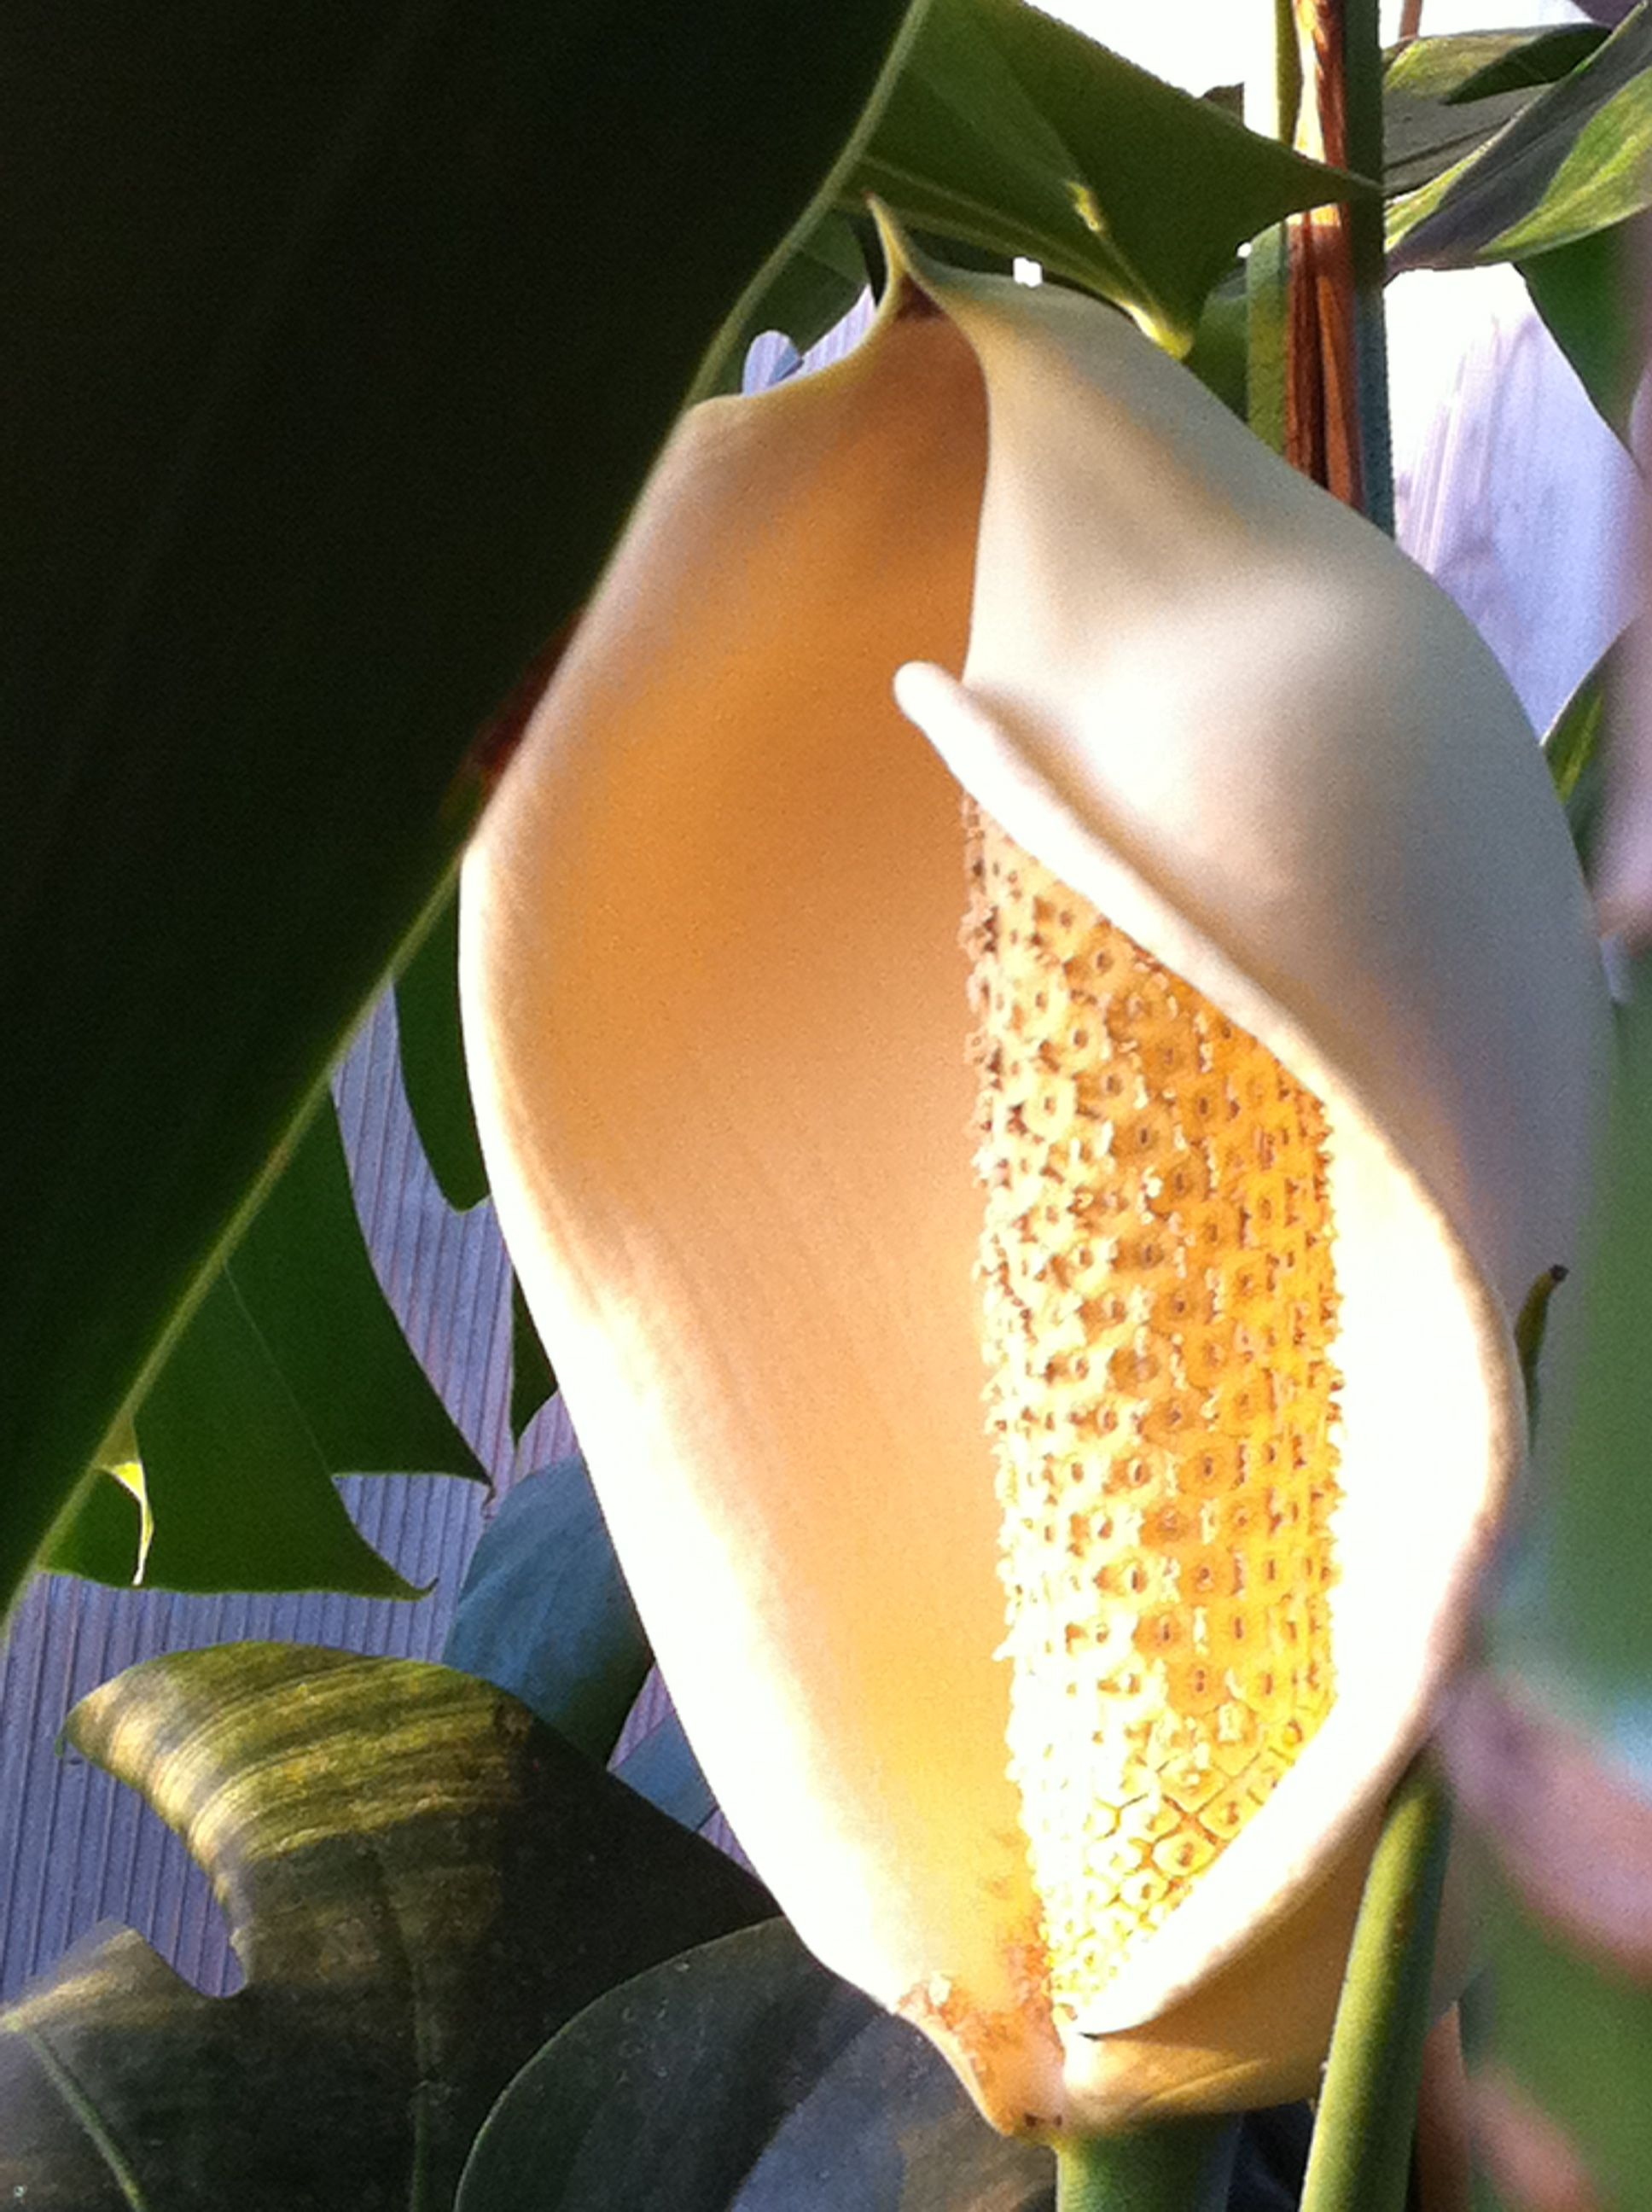 With The Right Conditions, The Fruit Is Said To Taste